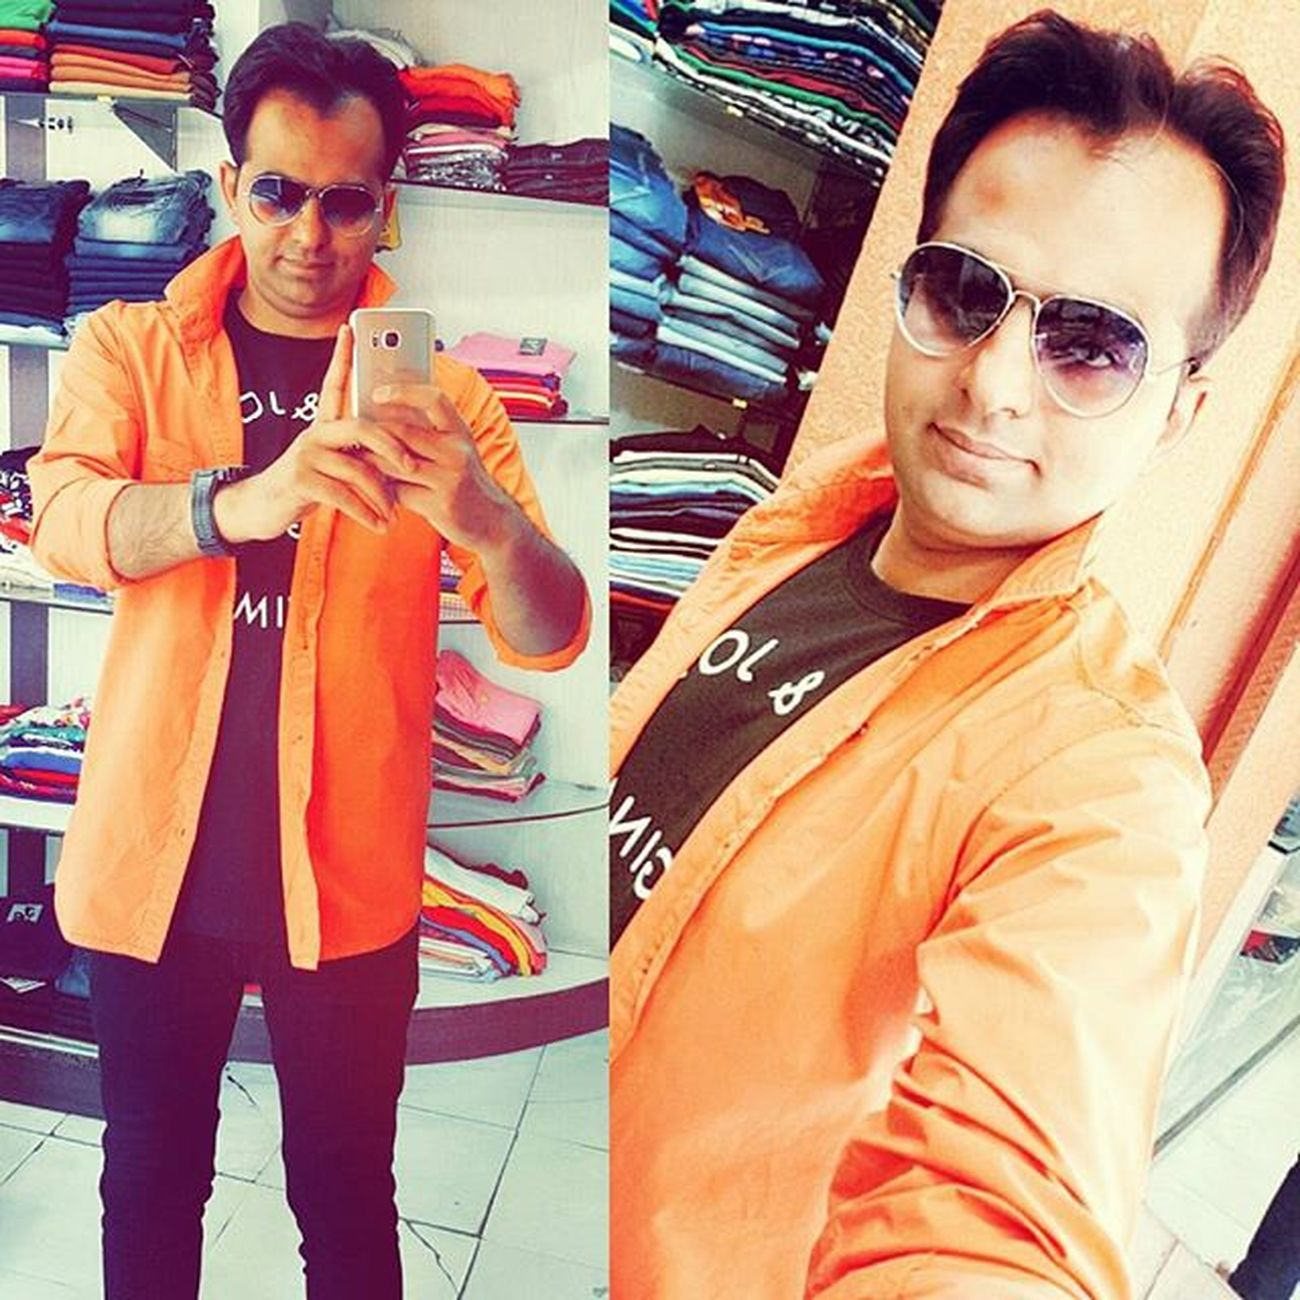 Ððñ'† qµï† ¥ðµr Ðå¥ Ðrêåm... Mirrorselfie Instastyle Selfietime Mirrorshot Selfiyaan Instamood Instalove Instapic Fitlife Instastyle Instashine Instaswag Photocollage Instadaily Smile Picoftheday Aviatorsshades Mirrorshot Happy Look Life Stay Checkitout Punjabi Follow4follow like4like ludhianvi photooftheday throwback